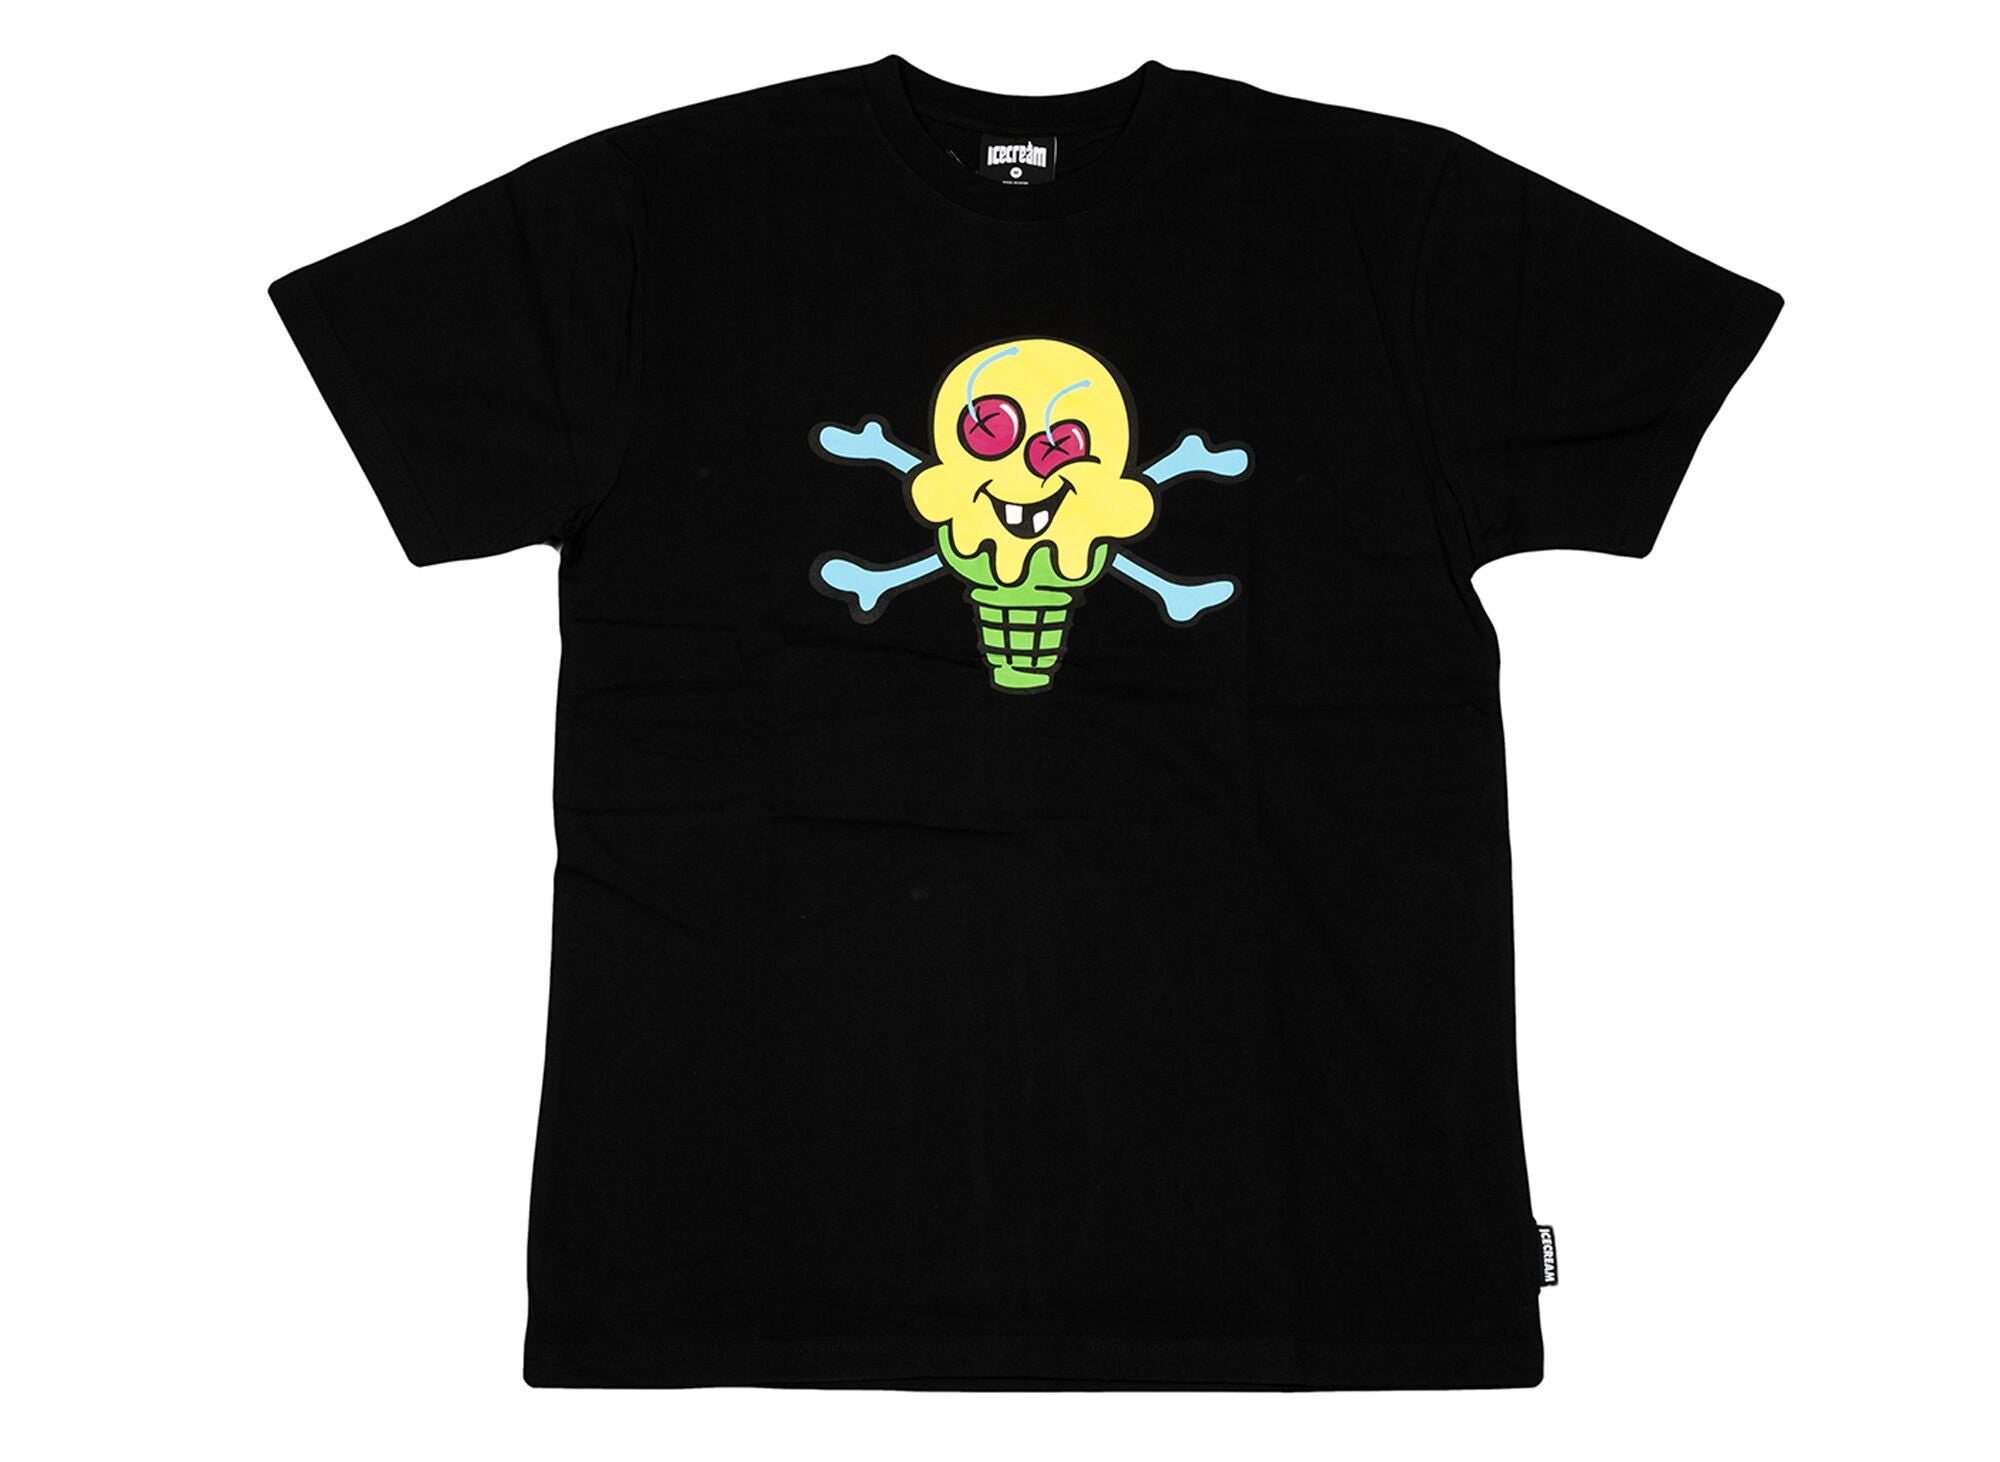 ICECREAM Cones and Bones SS Tee